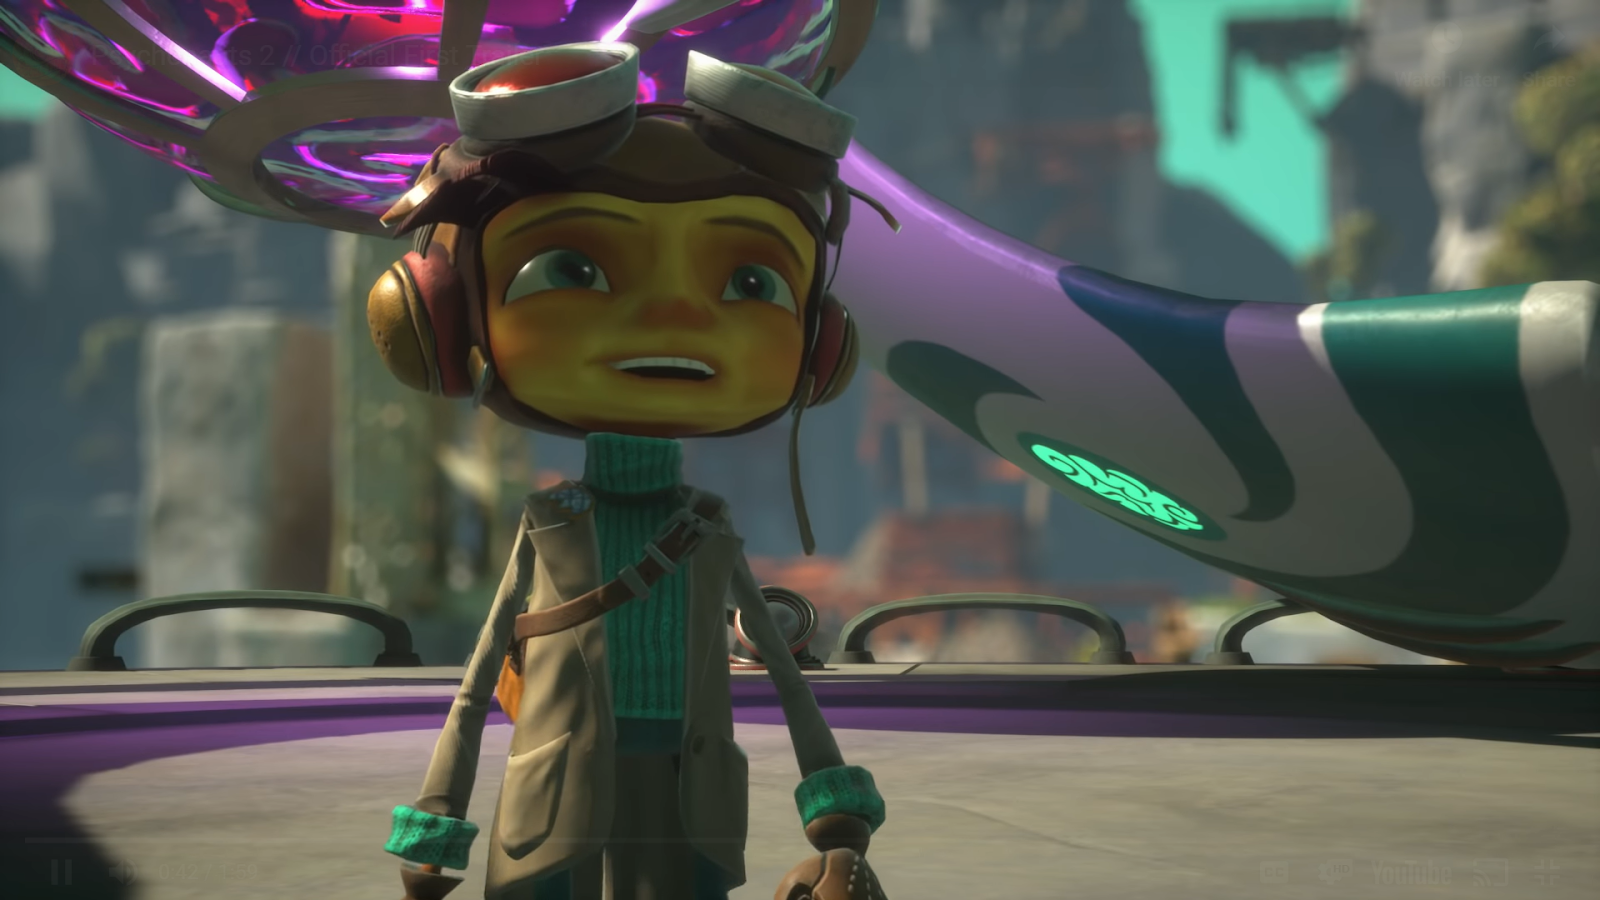 Double Fine's 'Psychonauts 2' Gets Delayed to 2020 - Bloody Disgusting